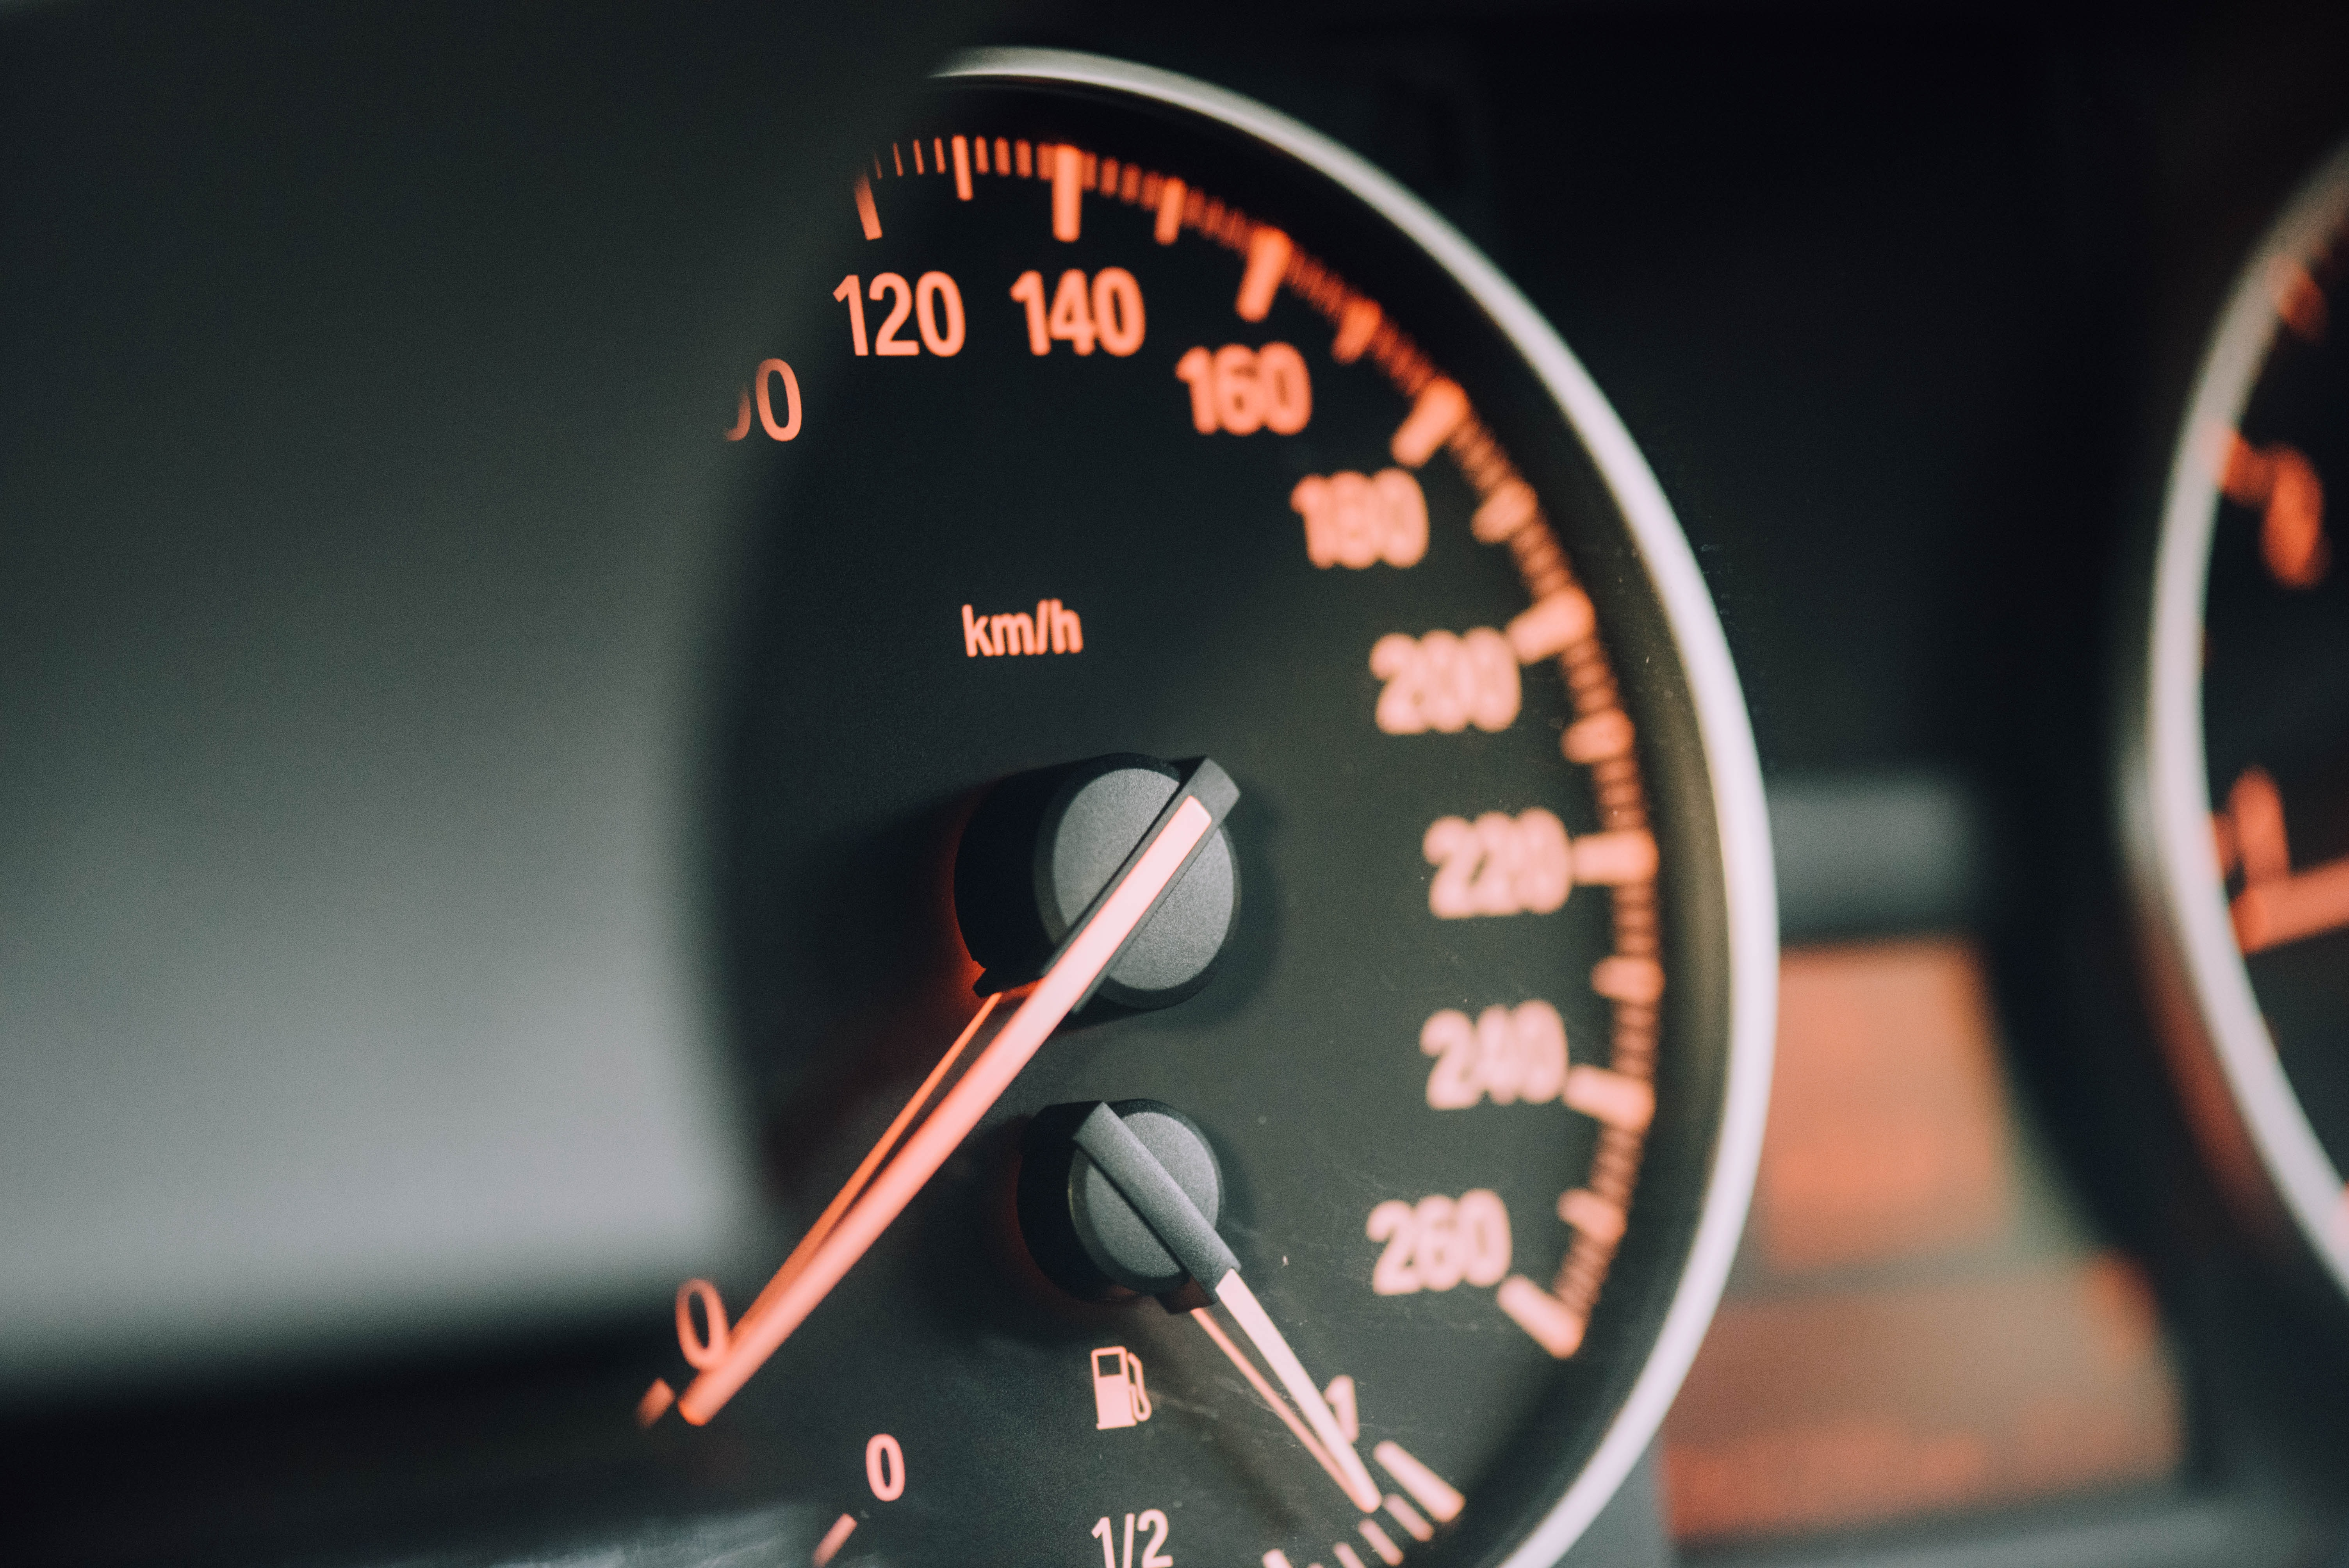 wallpaper hd,speedometer,gauge,auto part,measuring instrument,tachometer